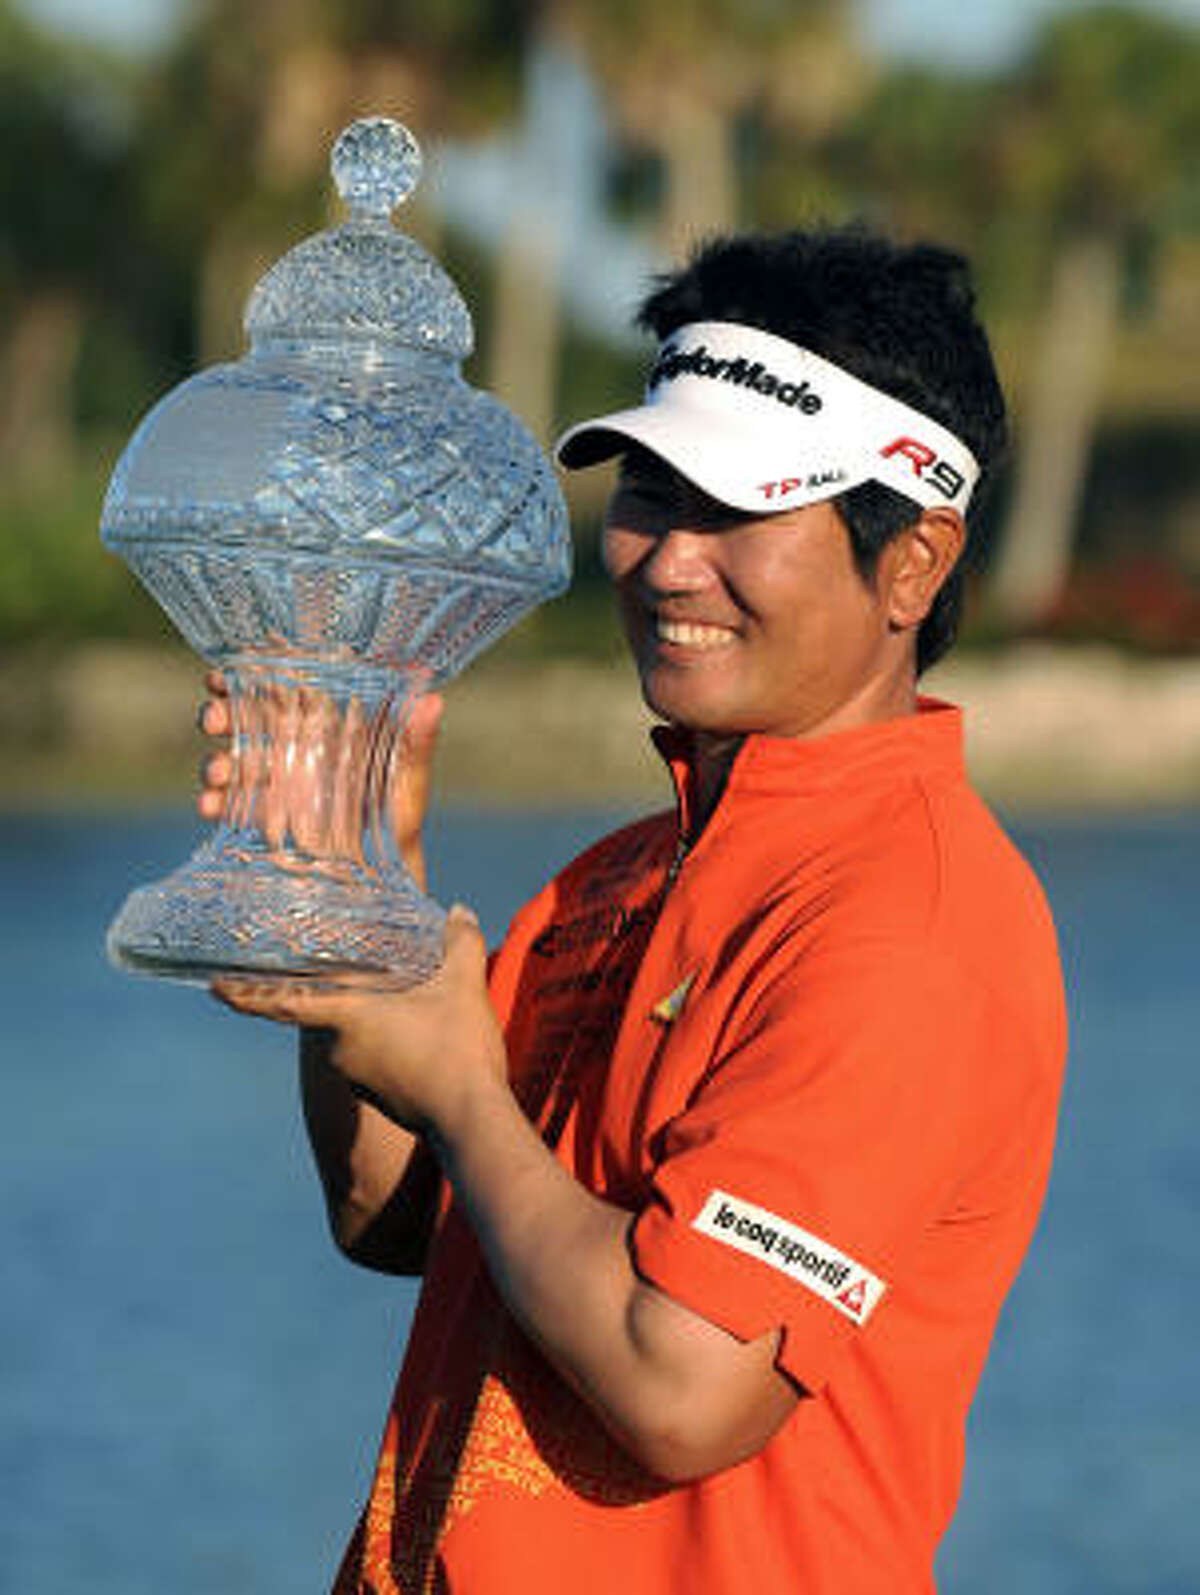 Y.E. Yang holds his trophy after winning the Honda Classic by one shot at the PGA National Resort and Spa in Palm Beach Gardens, Fla.